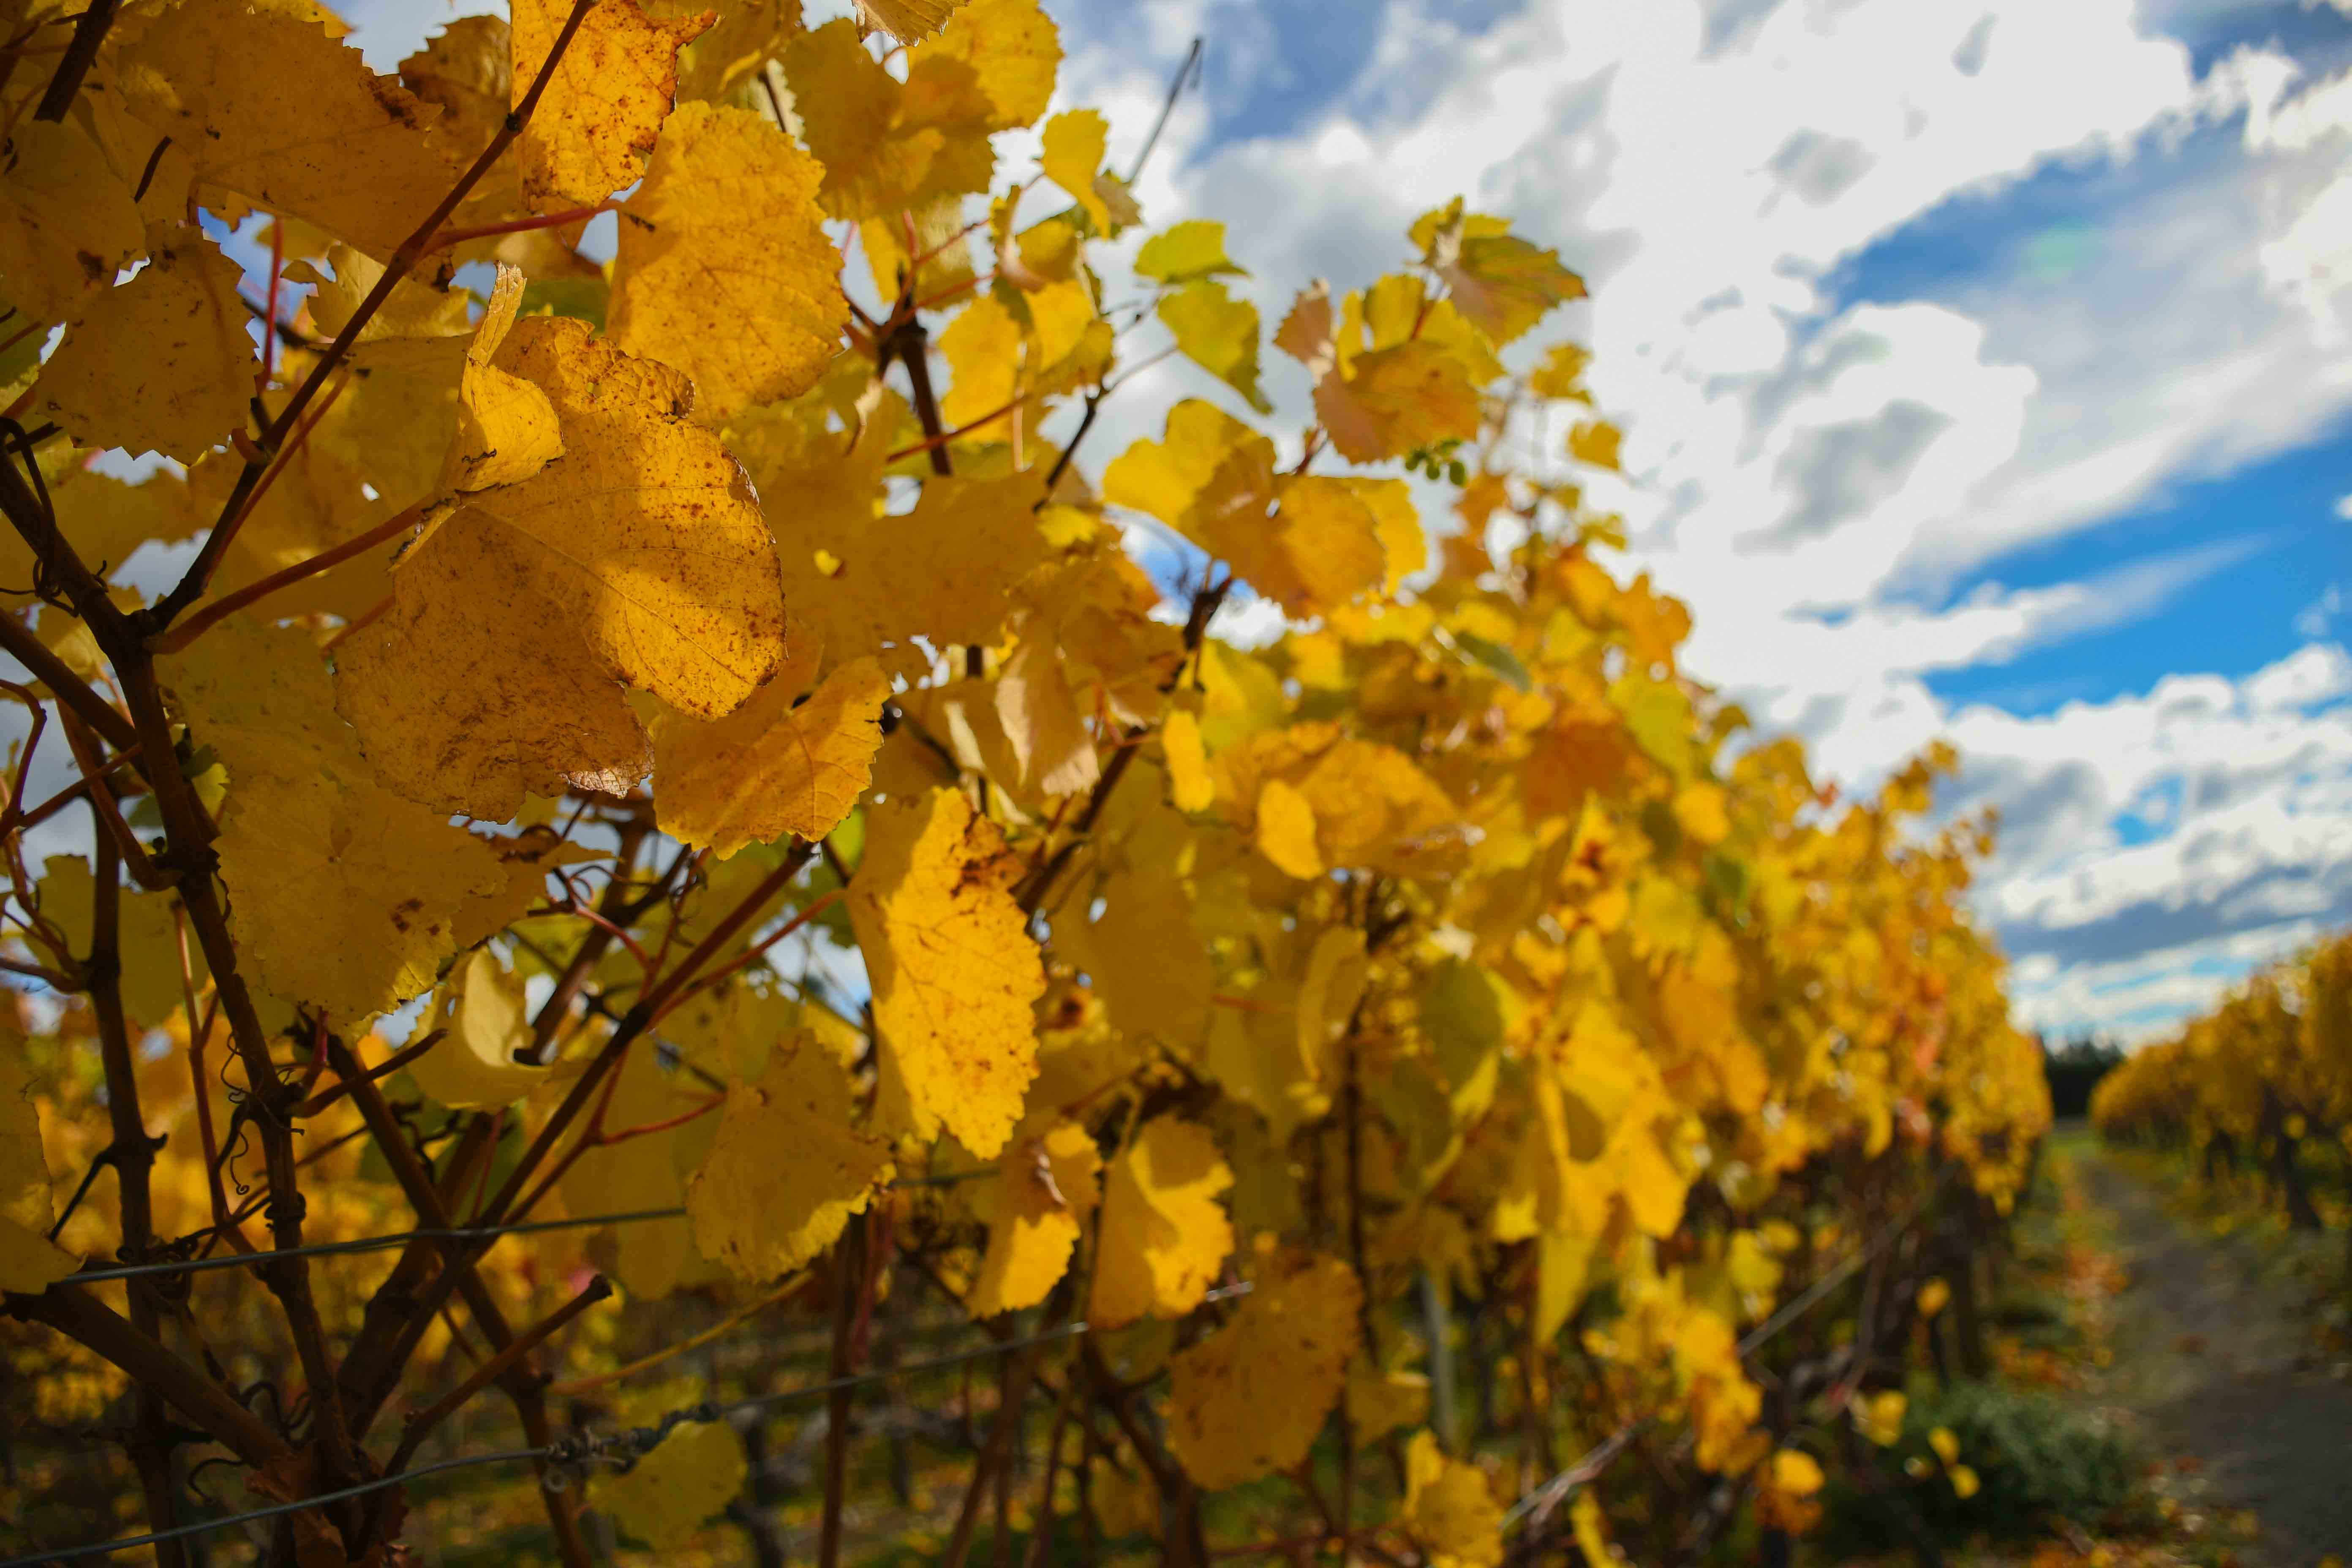 Environmentally friendly wine tours